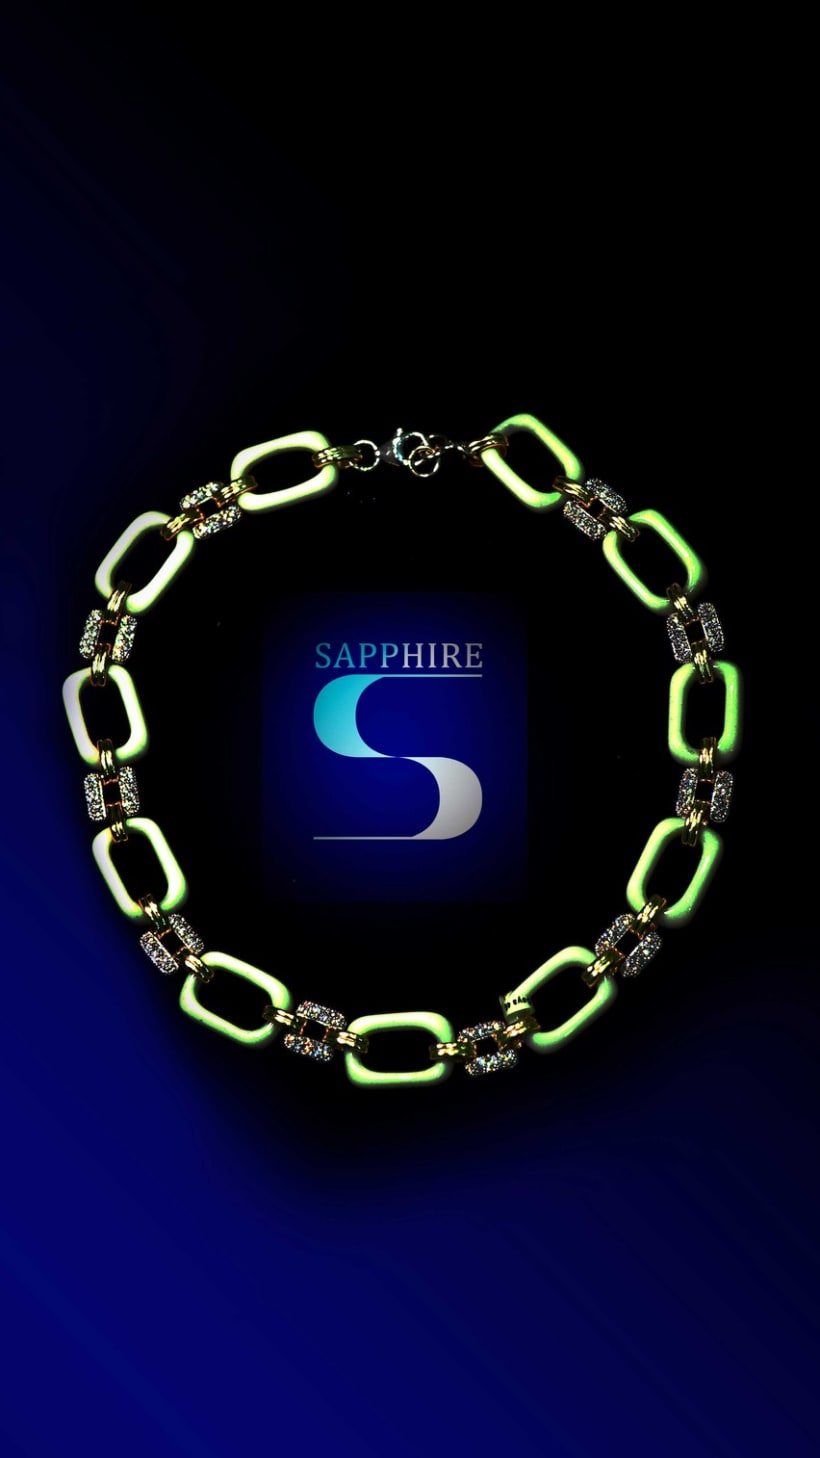 works for Sapphire 1